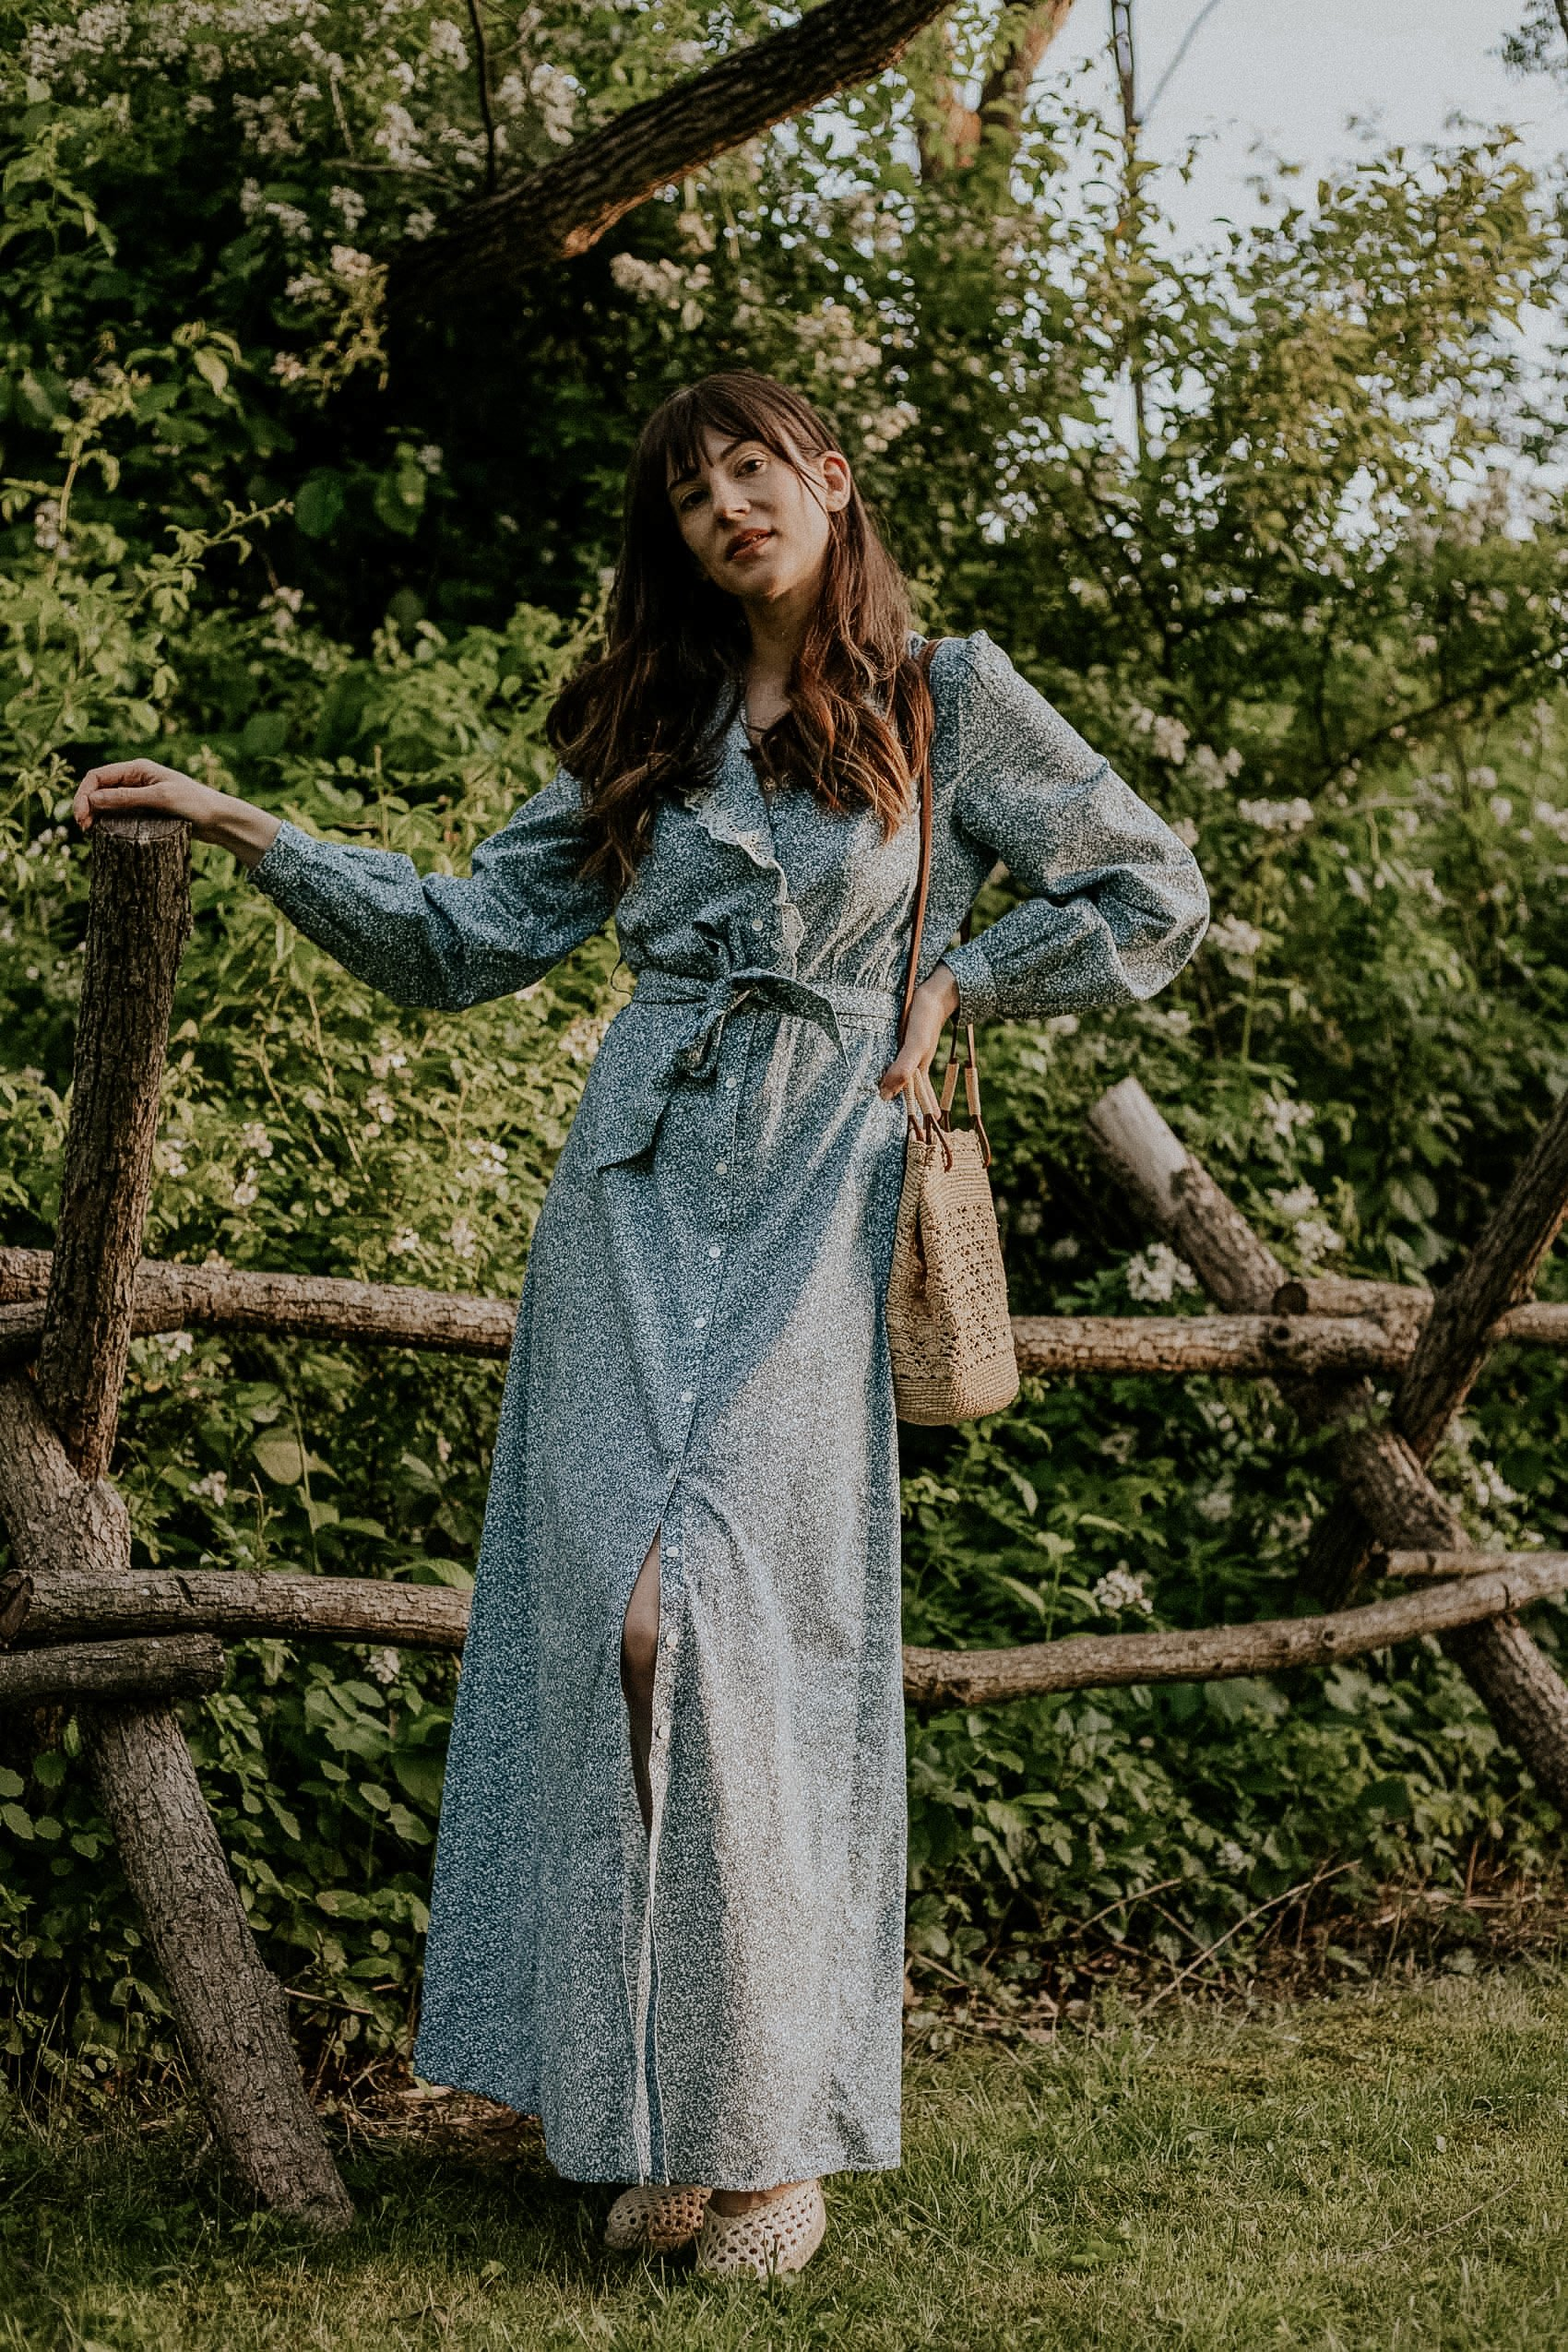 Blue Floral Prairie Dress and Woven Summer Bag on woman by fence